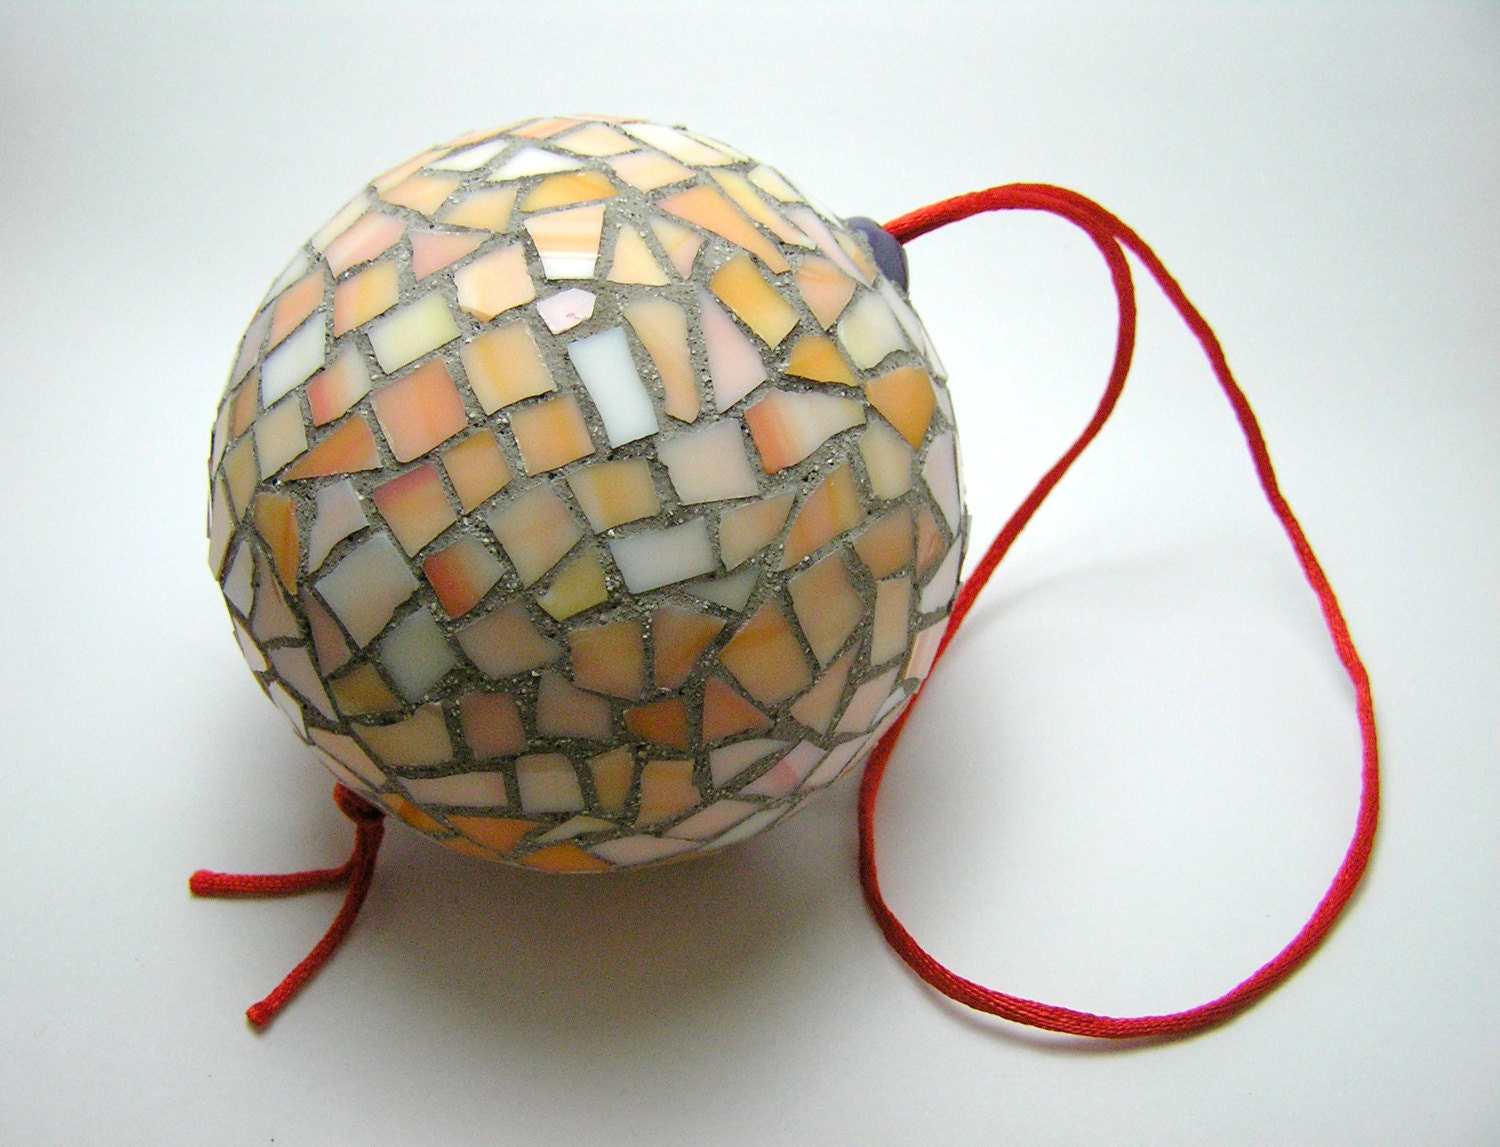 Mosaic Handmade Ornament Ball Christmas Tree And Home Decor